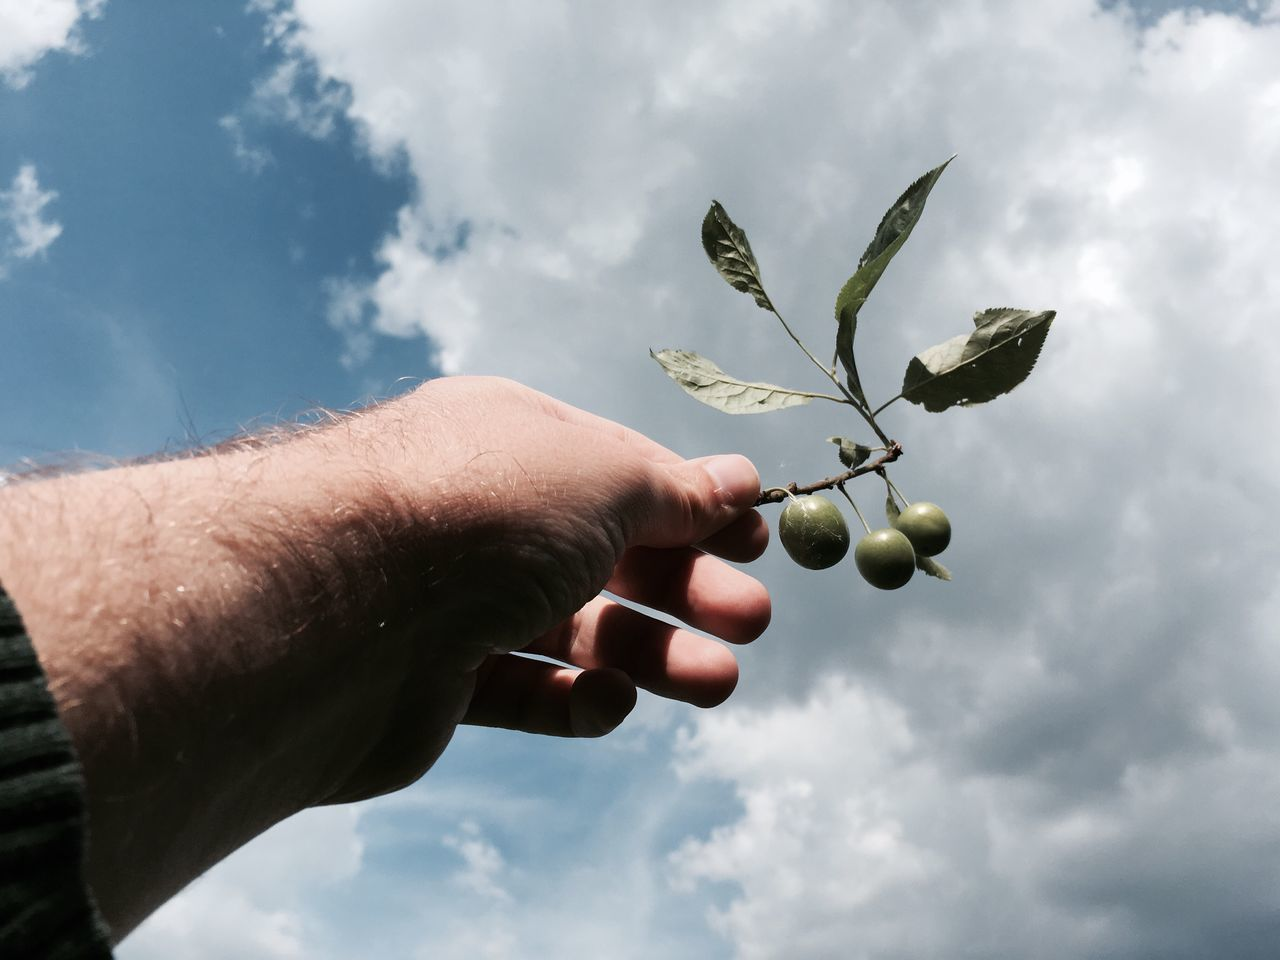 Human Hand Sky Cloud - Sky Human Body Part Holding Nature Outdoors One Person Leaf Day Close-up Growth Real People Tree Branch Beauty In Nature Freshness People